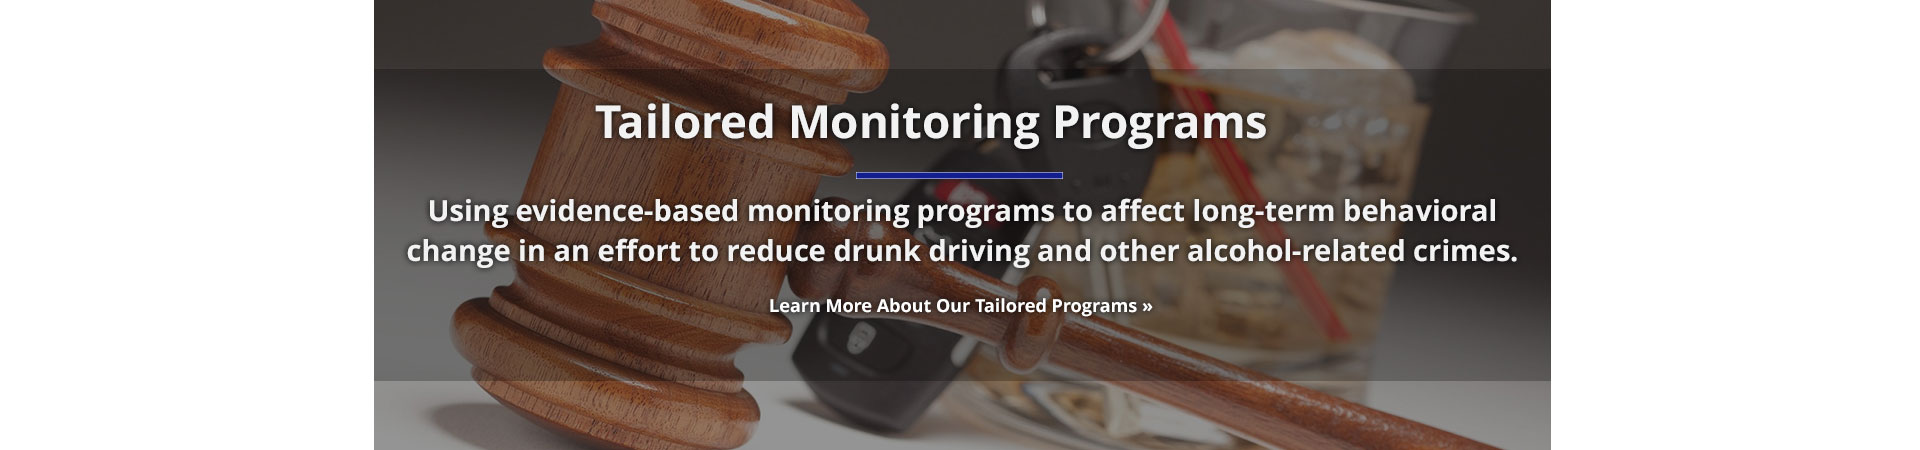 Tailored Alcohol and Location Monitoring Programs from Safe Monitoring Solutions